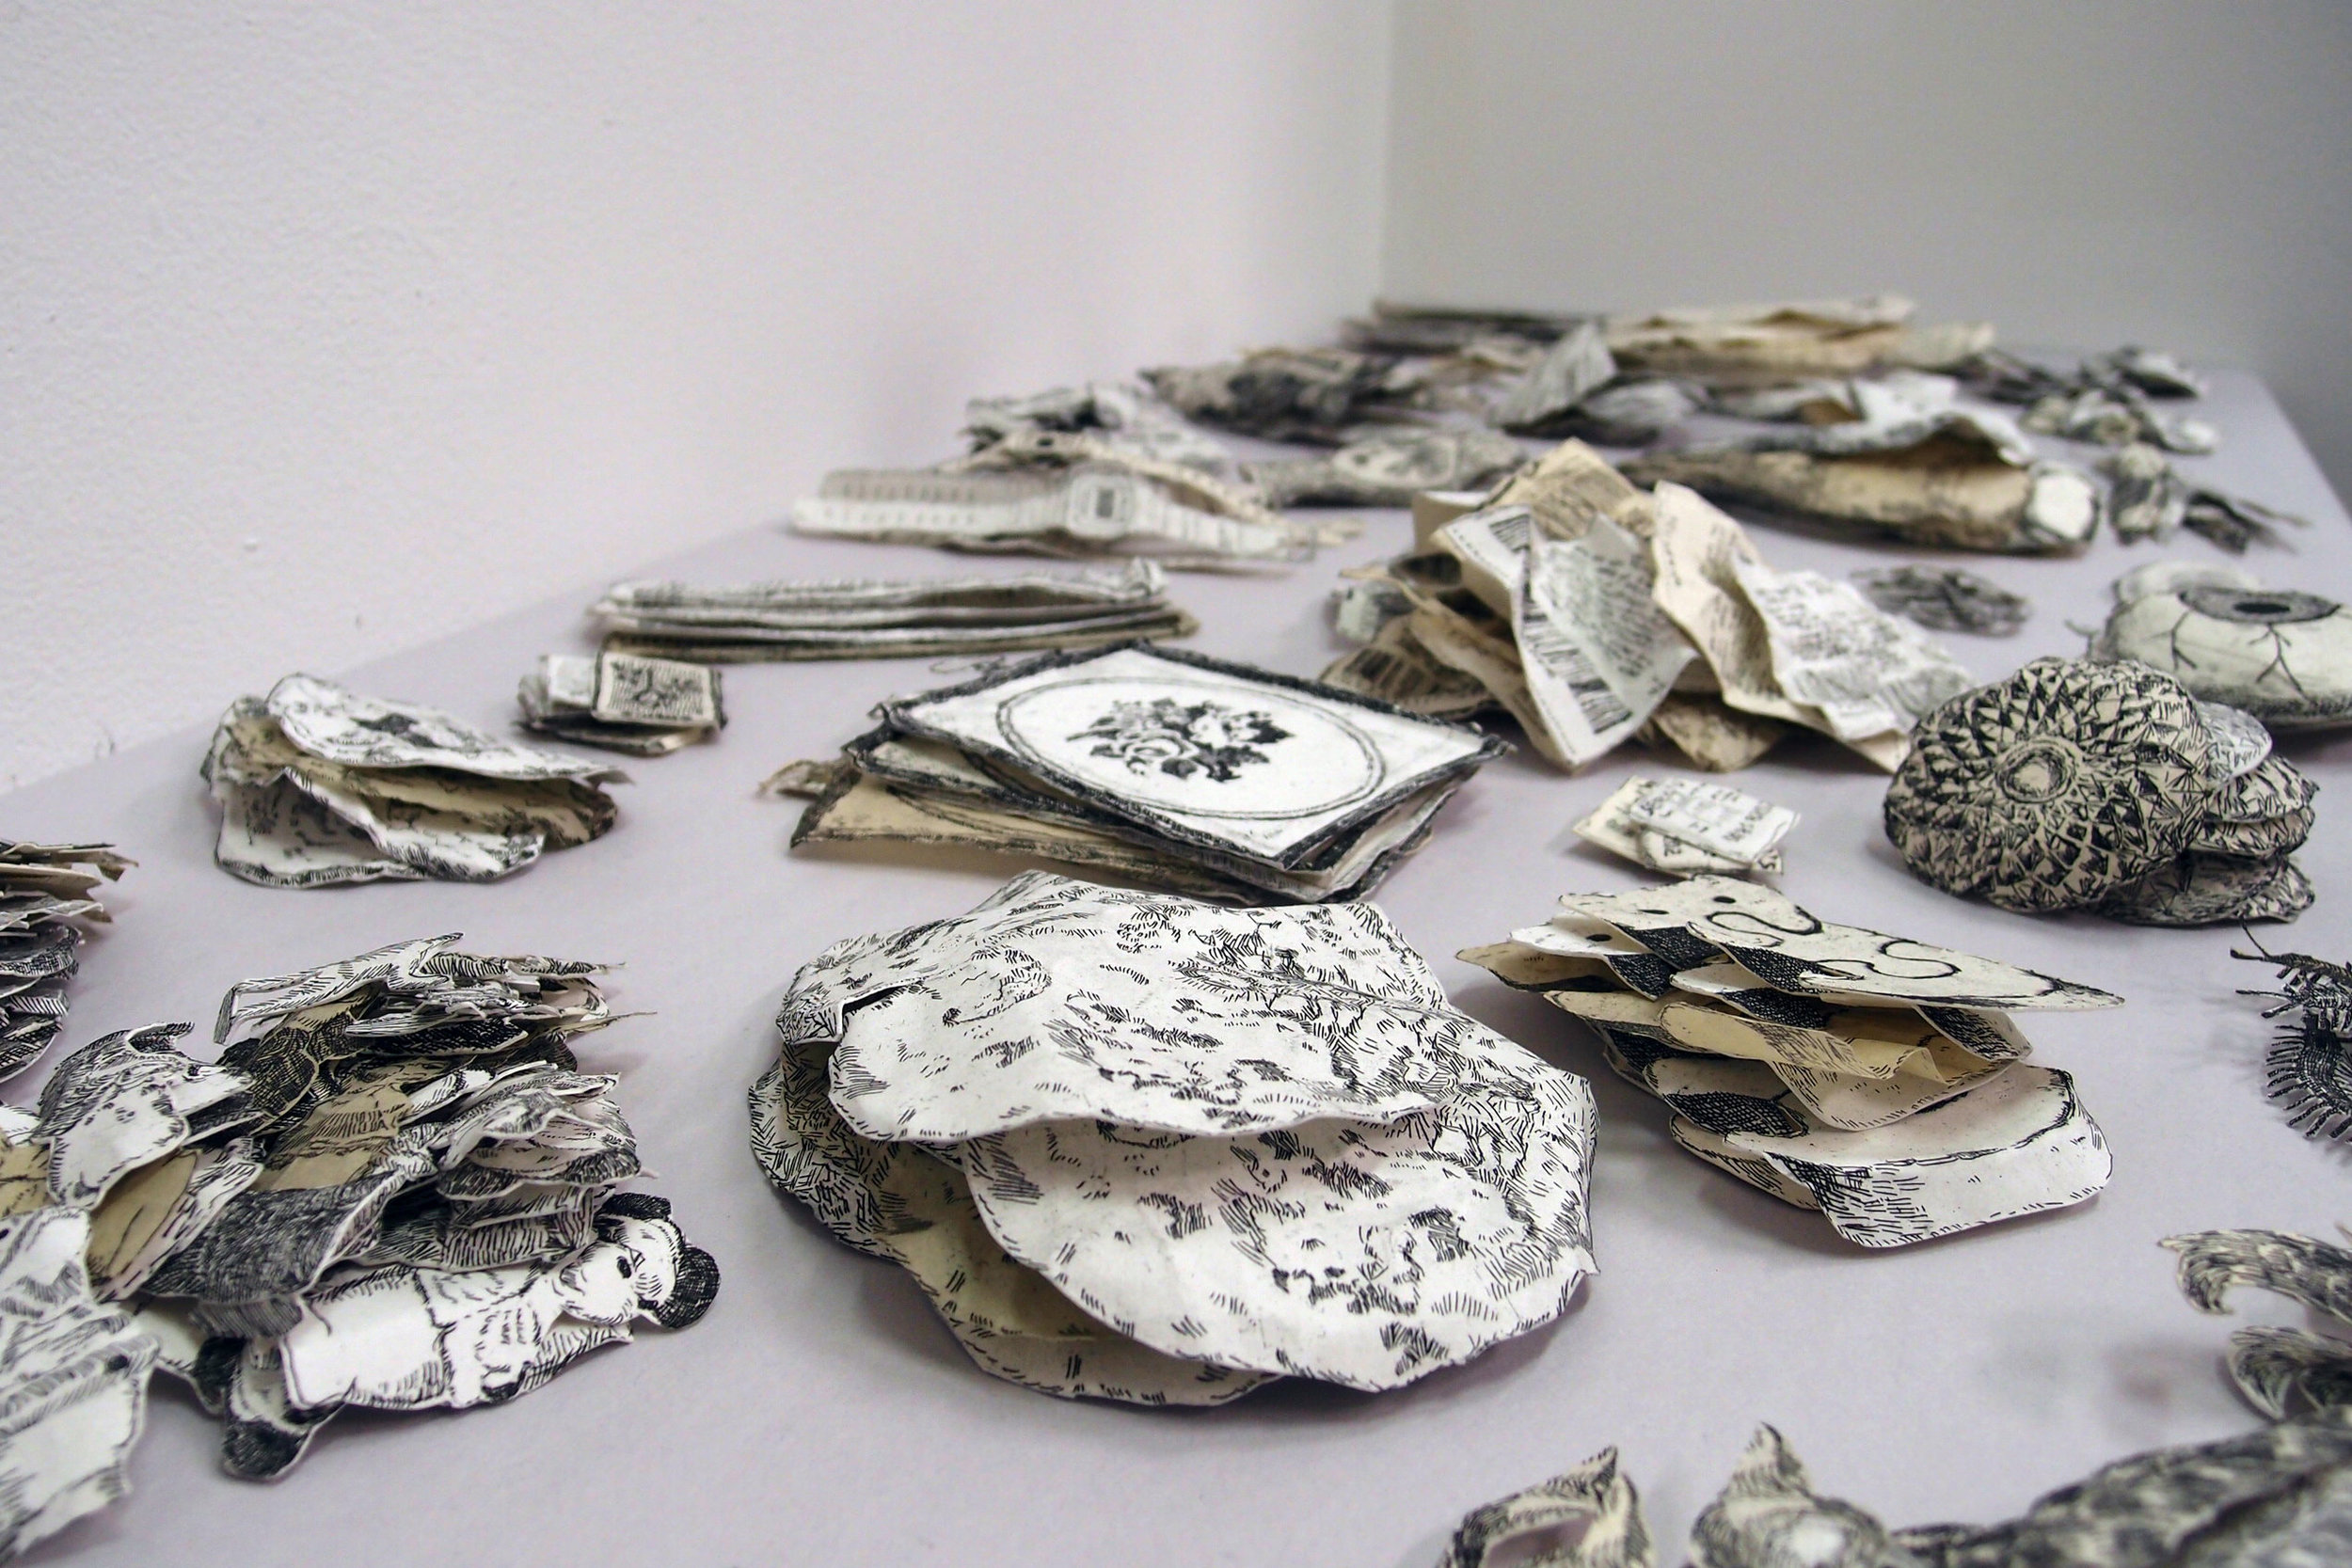 7_Carolyn Hawkins_Private Assemblage (detail)_2014.JPG